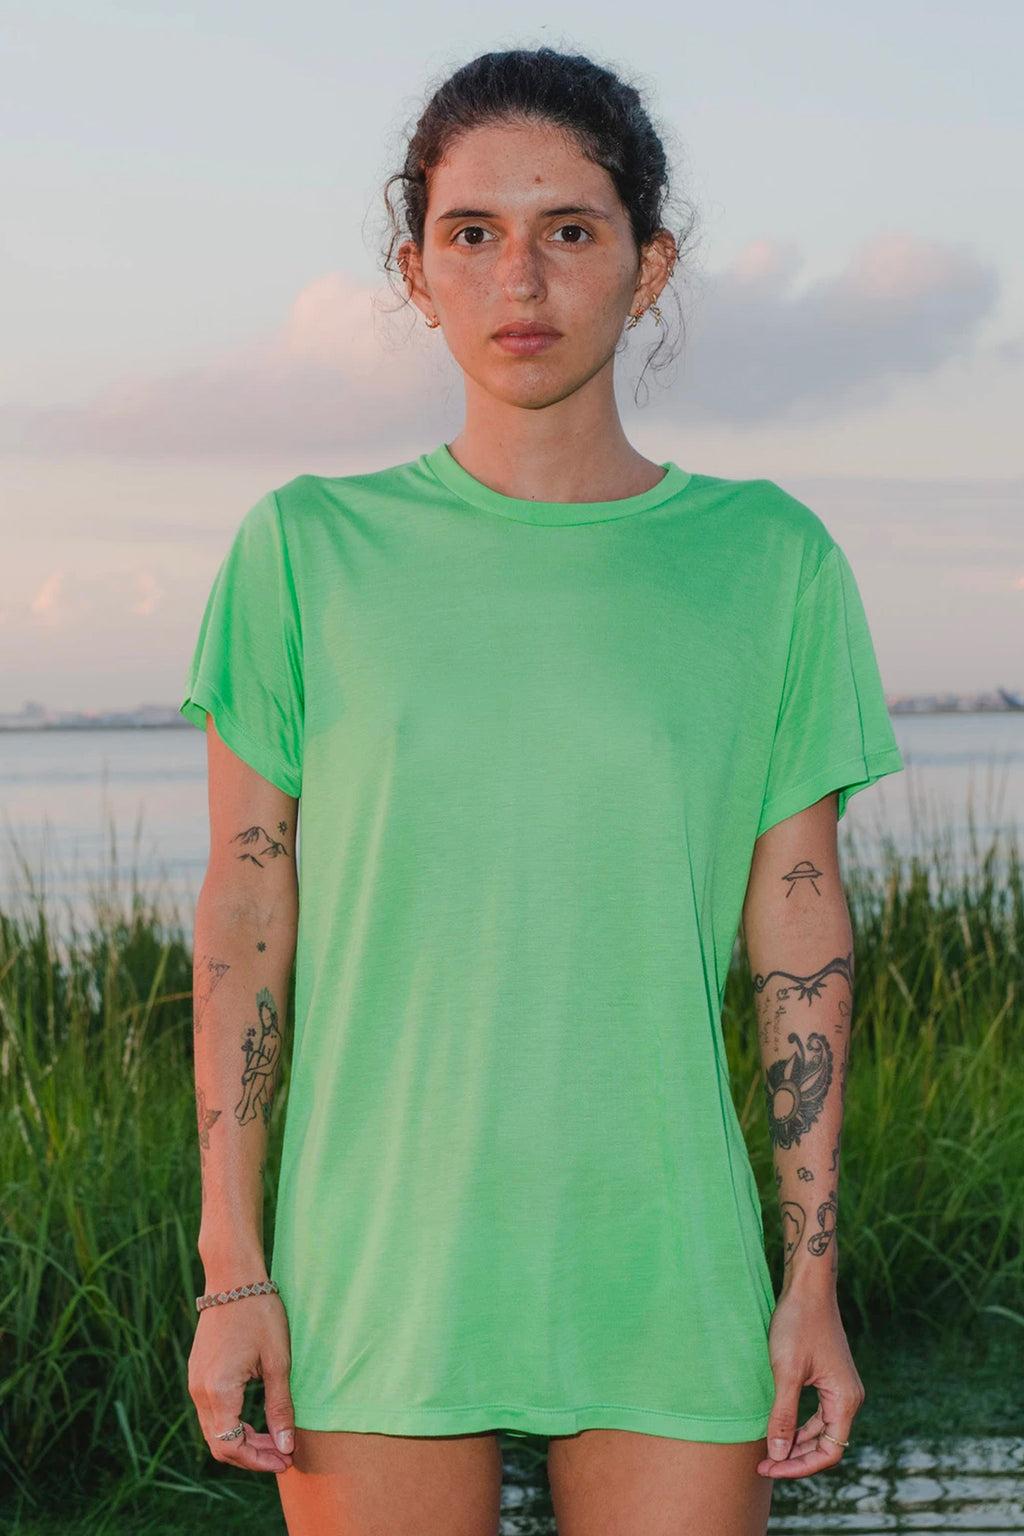 Base Range Bamboo Tee Shirt in Ara Green